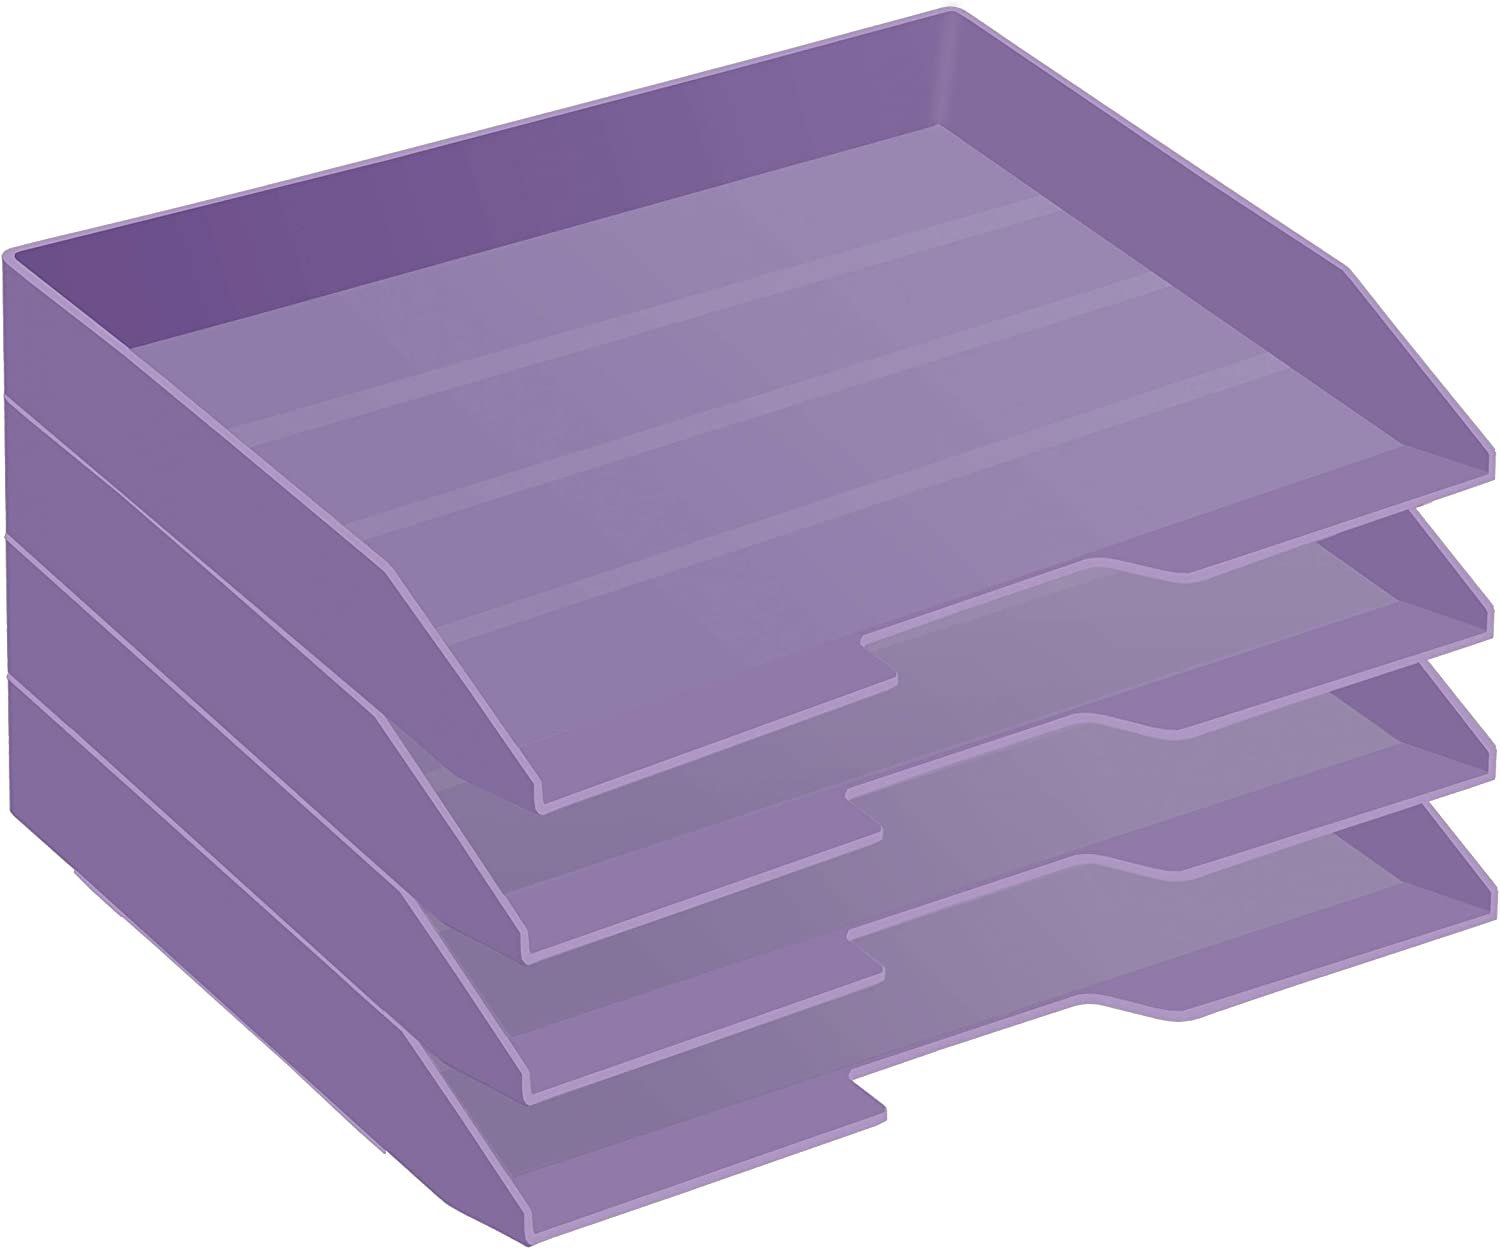 Acrimet Stackable Letter Tray 4 Tier Side Load Plastic Desktop File Organizer (Solid Purple Color)